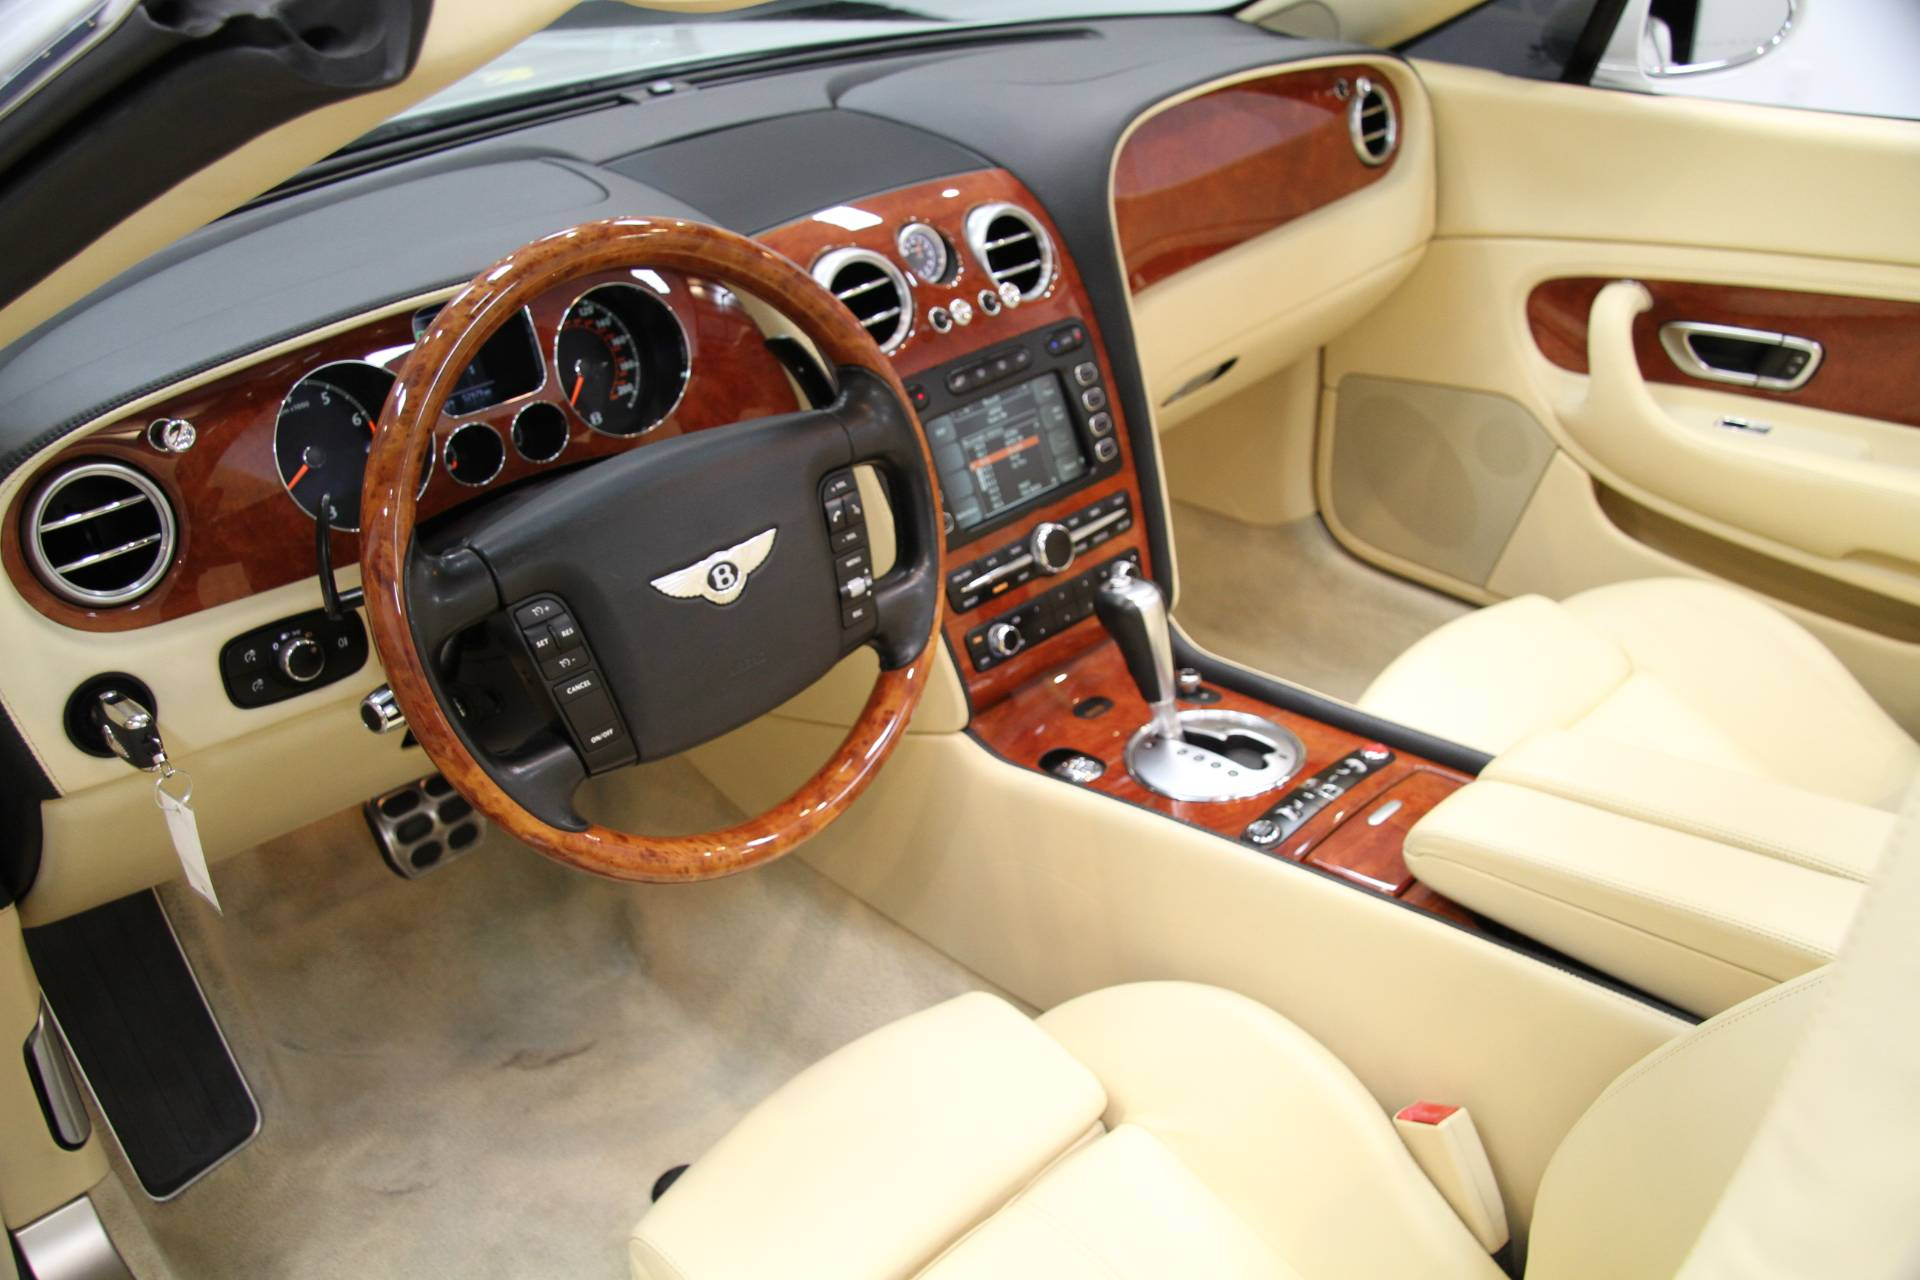 Free Vehicle History Report By Vin >> 2007 Bentley Continental GTC ** MAGNOLIA INTERIOR ** Stock ...